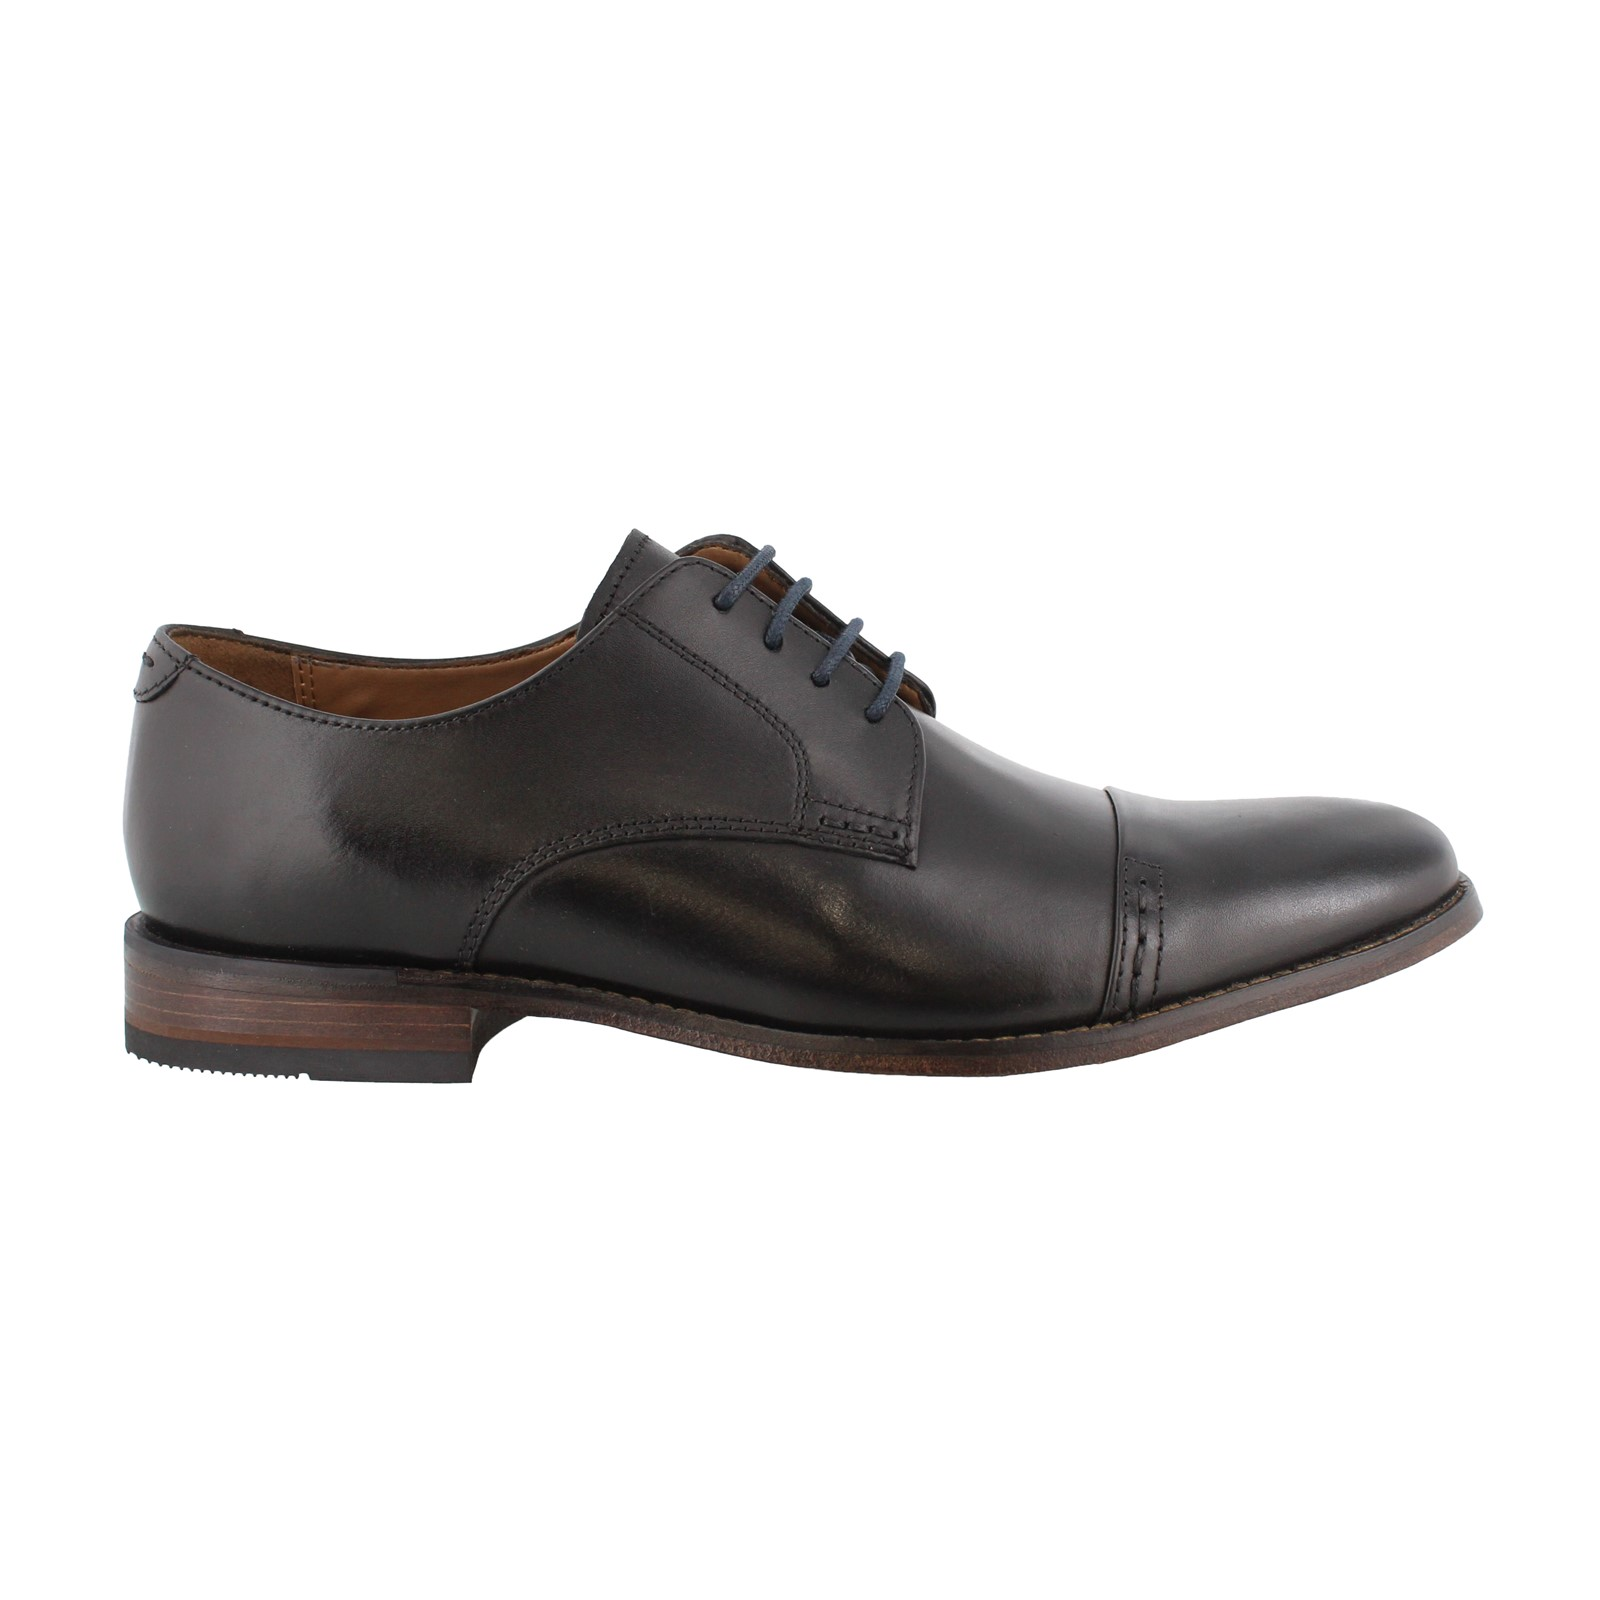 Men's Bostonian, Narrate Cap Lace up Shoes